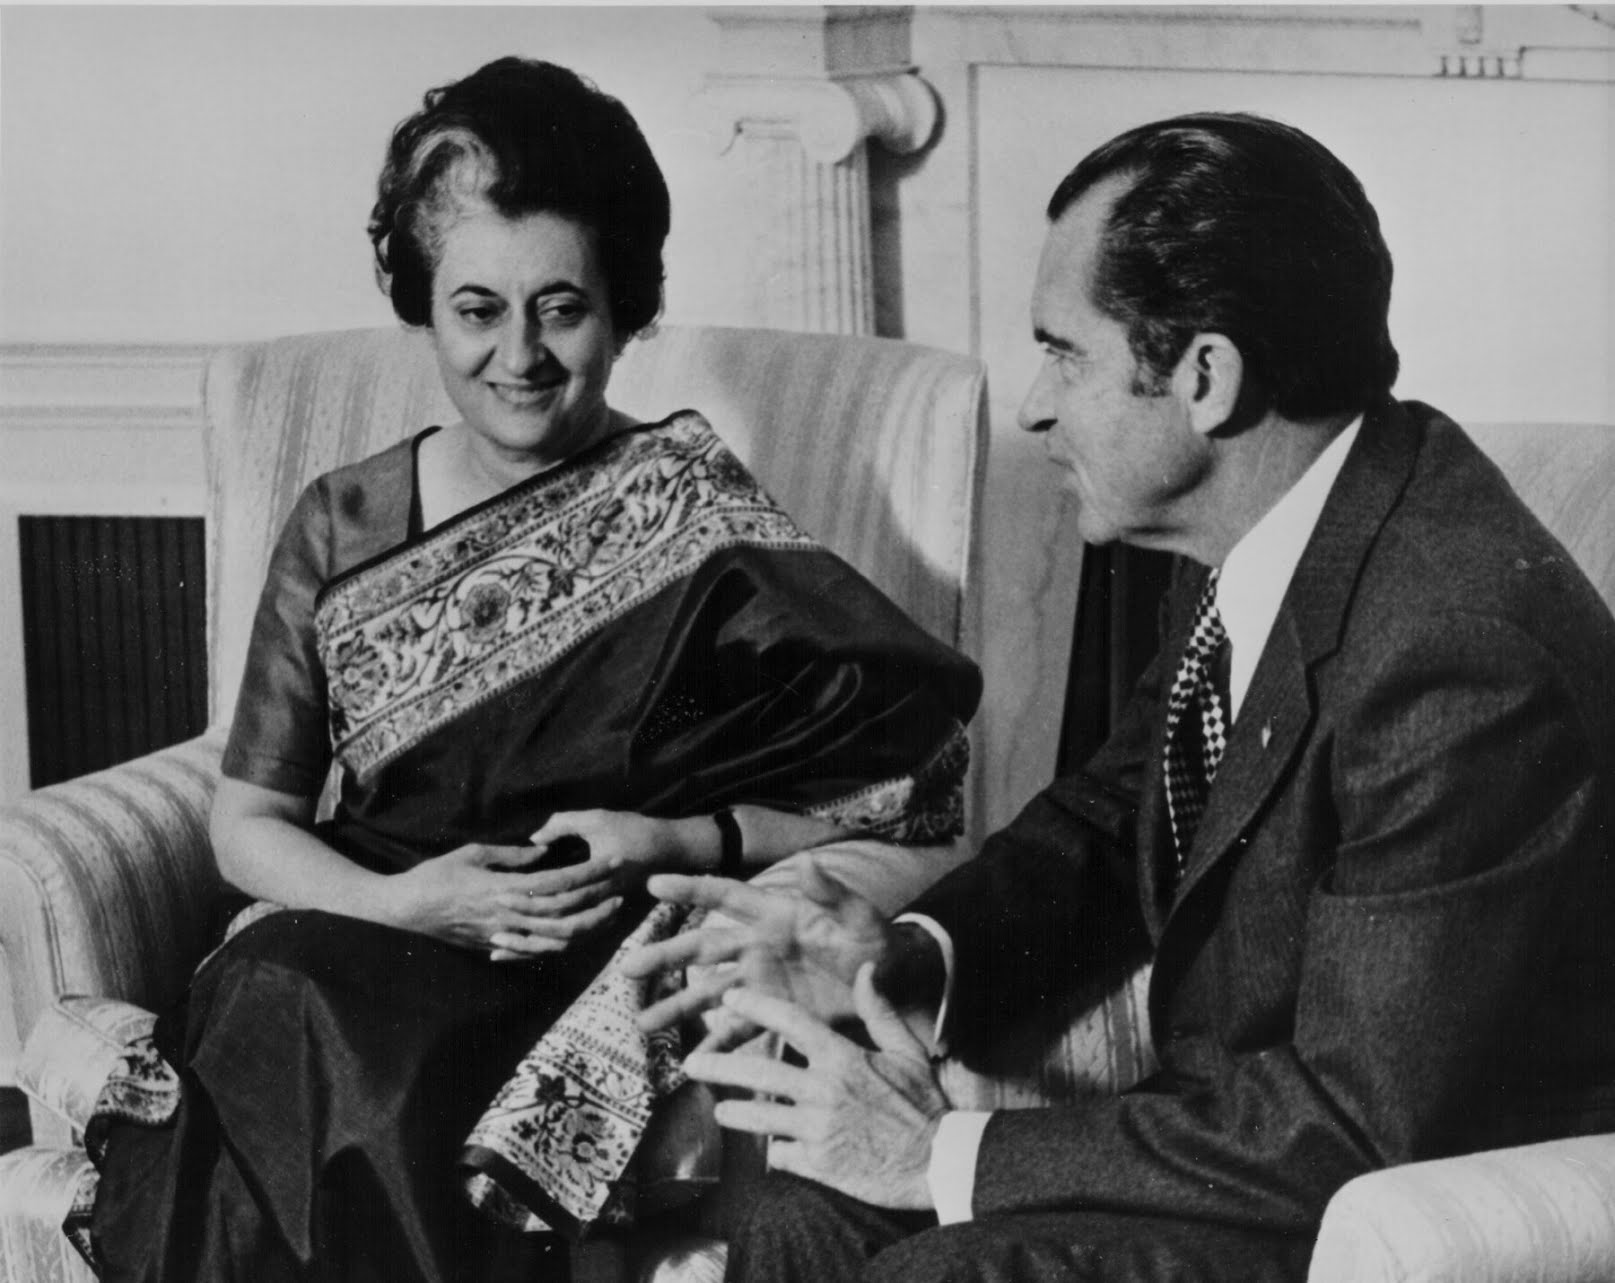 Prime Minister Indira Gandhi and President Nixon at the White House in 1971.